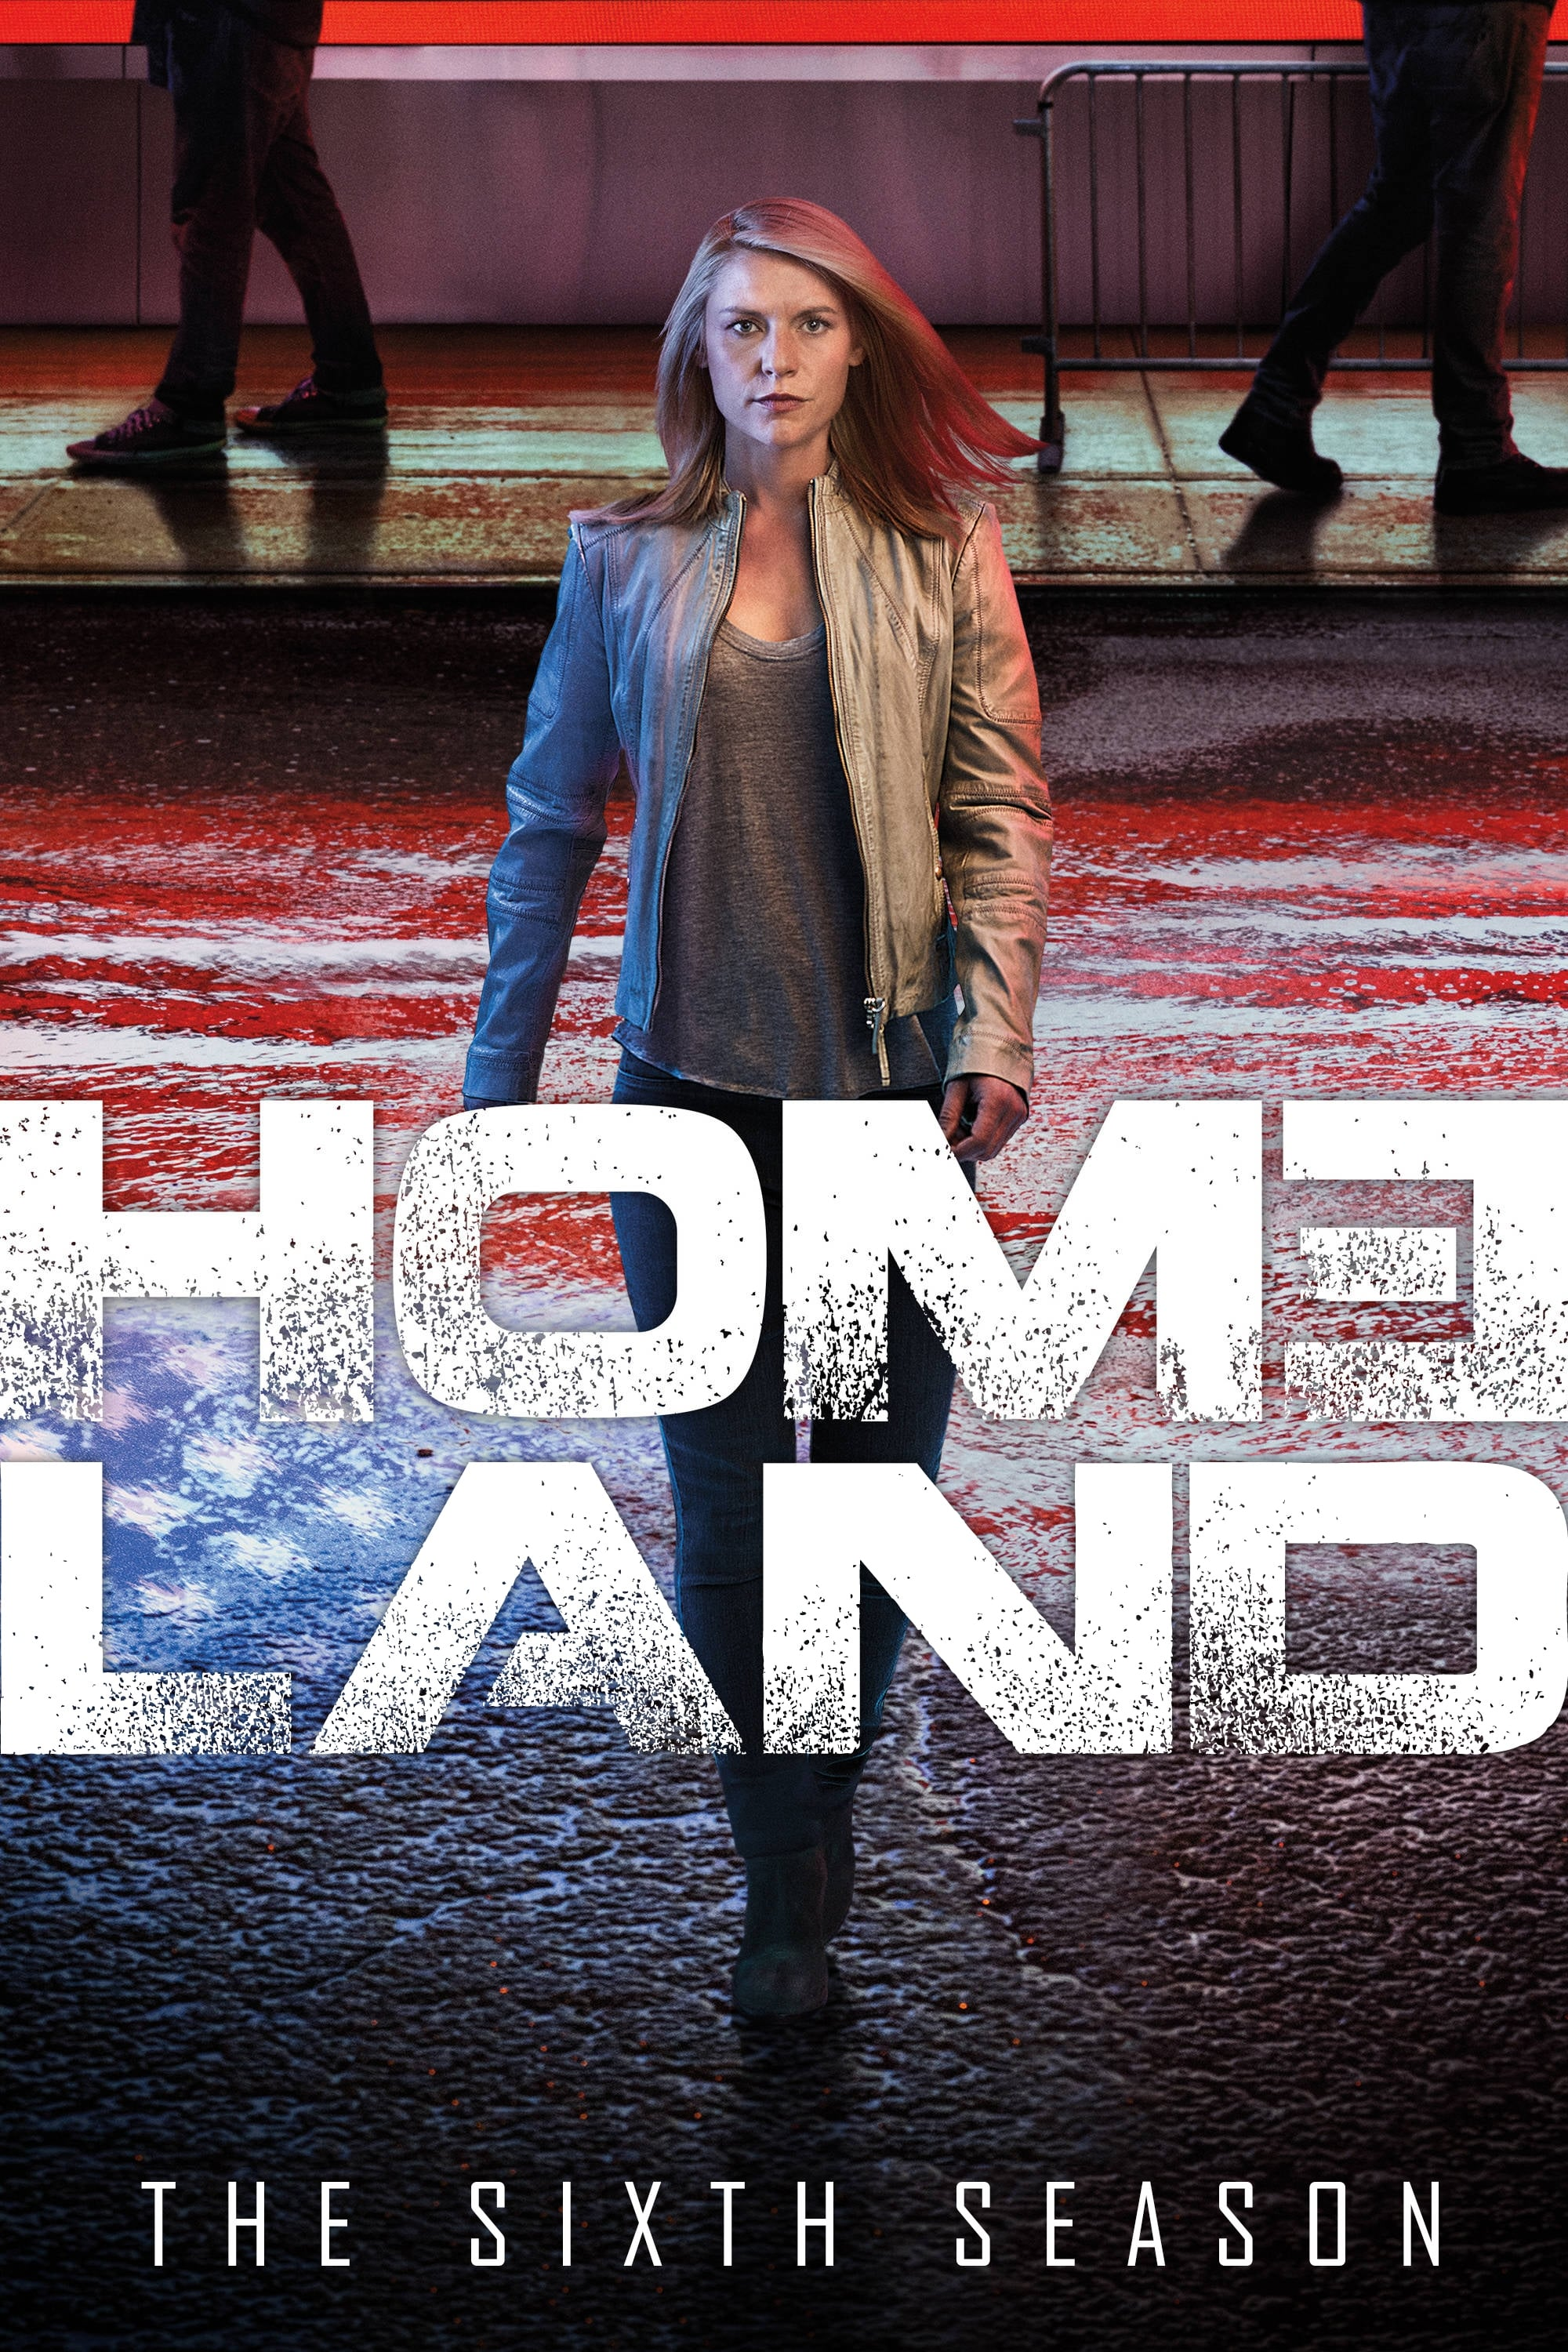 Homeland Season 6 putlocker 4k